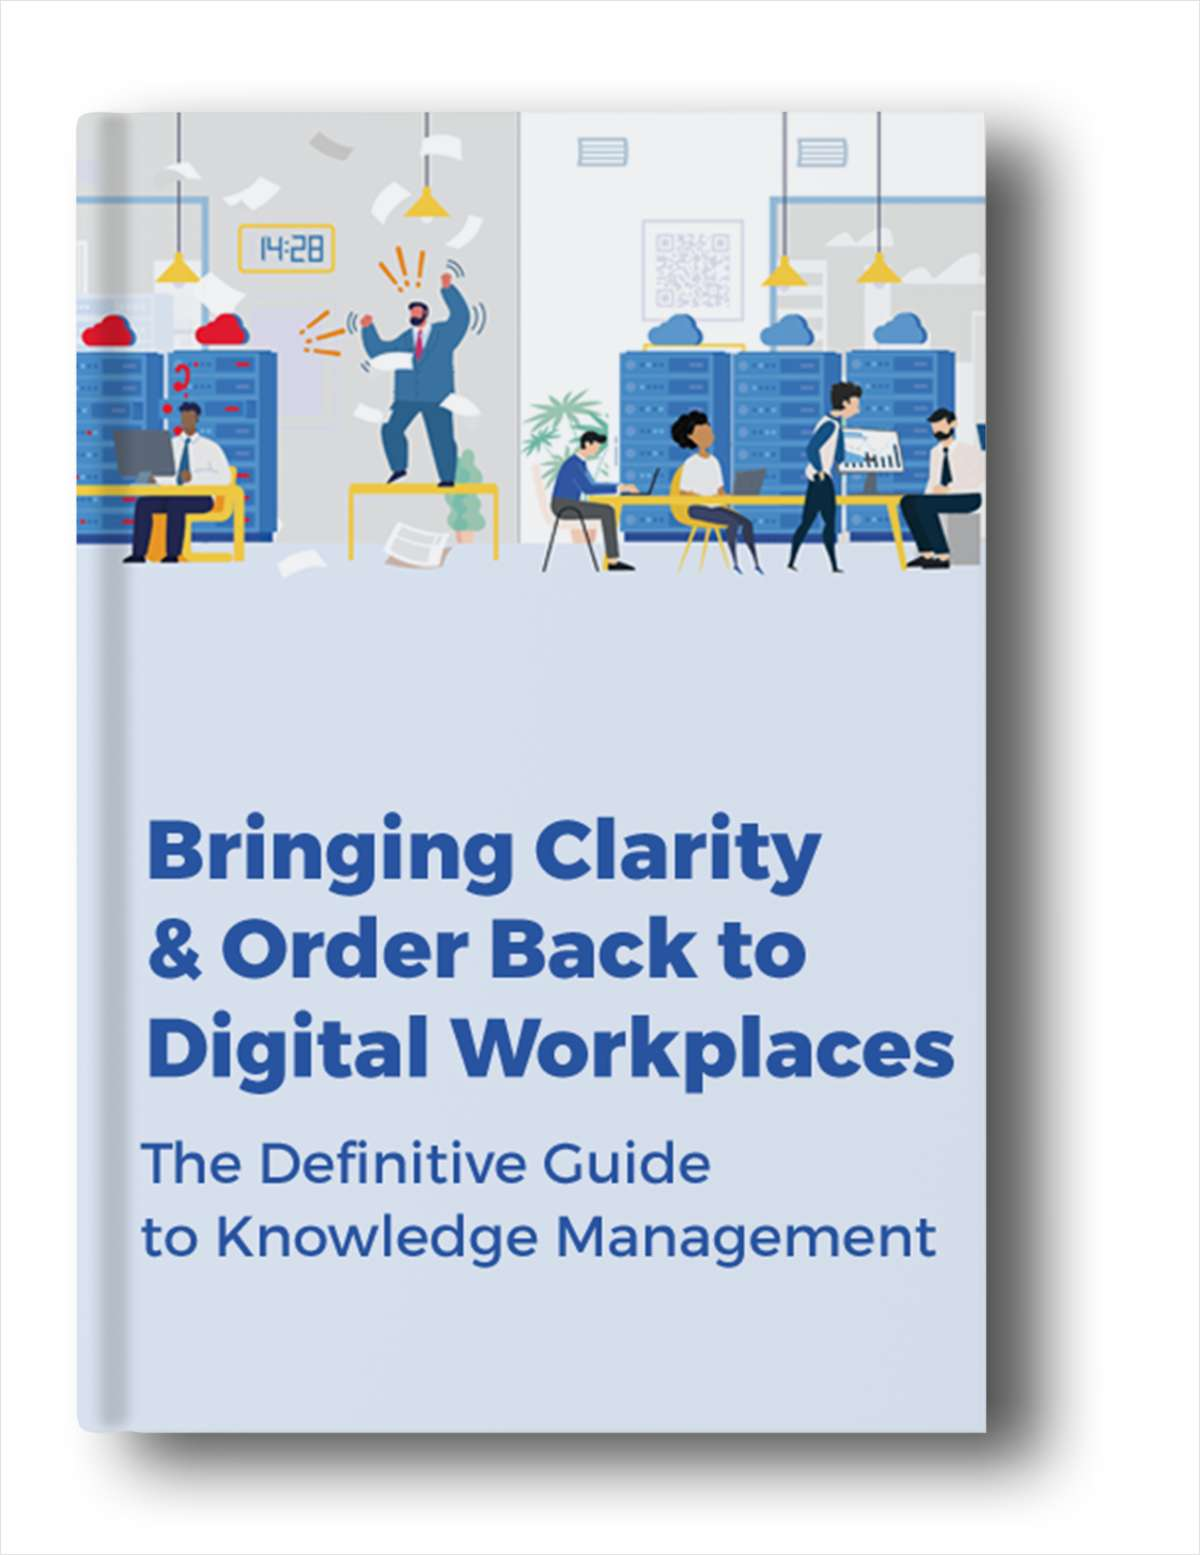 The Definitive Guide to Knowledge Management